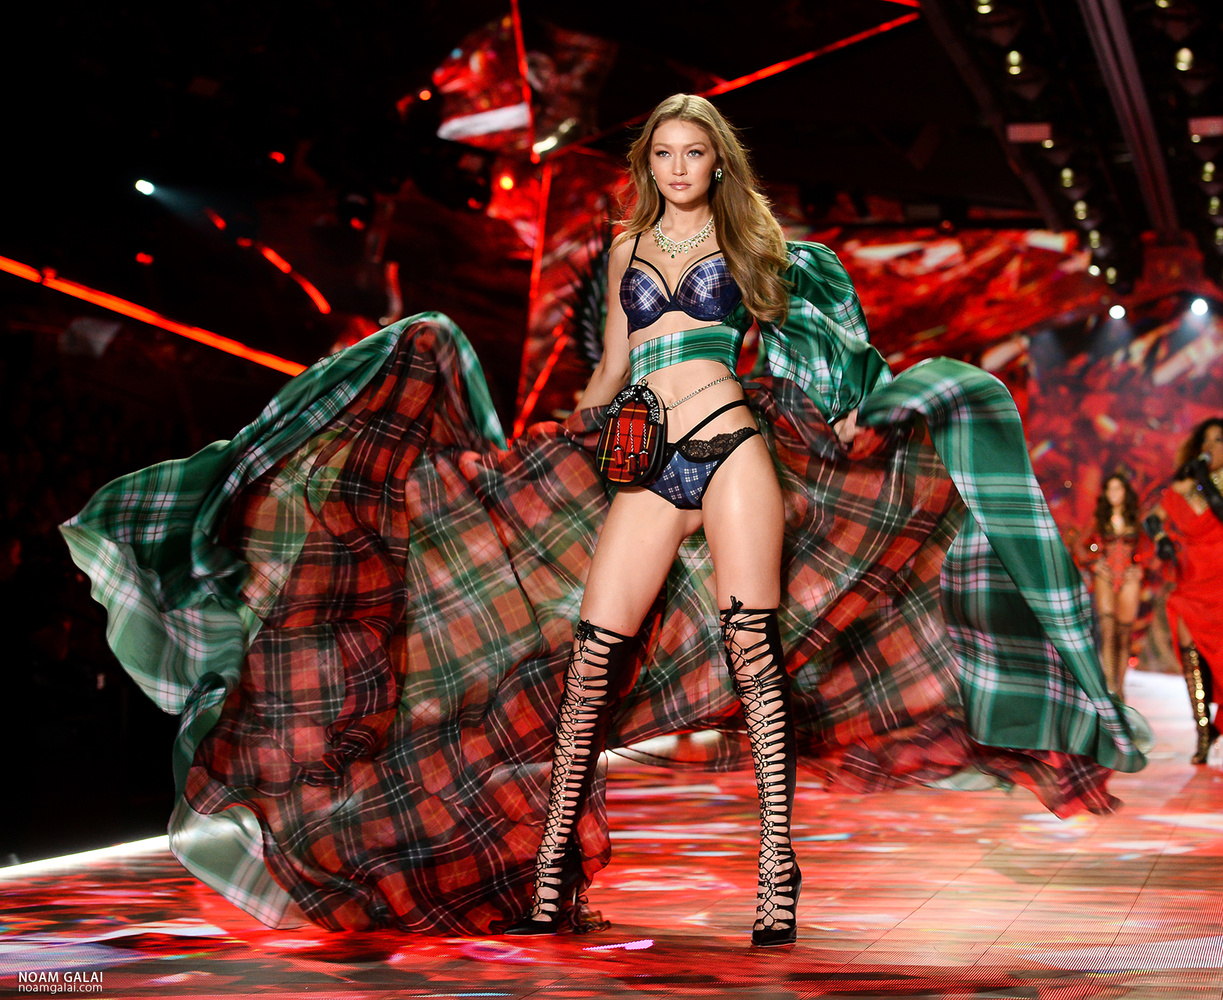 Gigi Hadid at the Victoria Secret show by Noam Galai